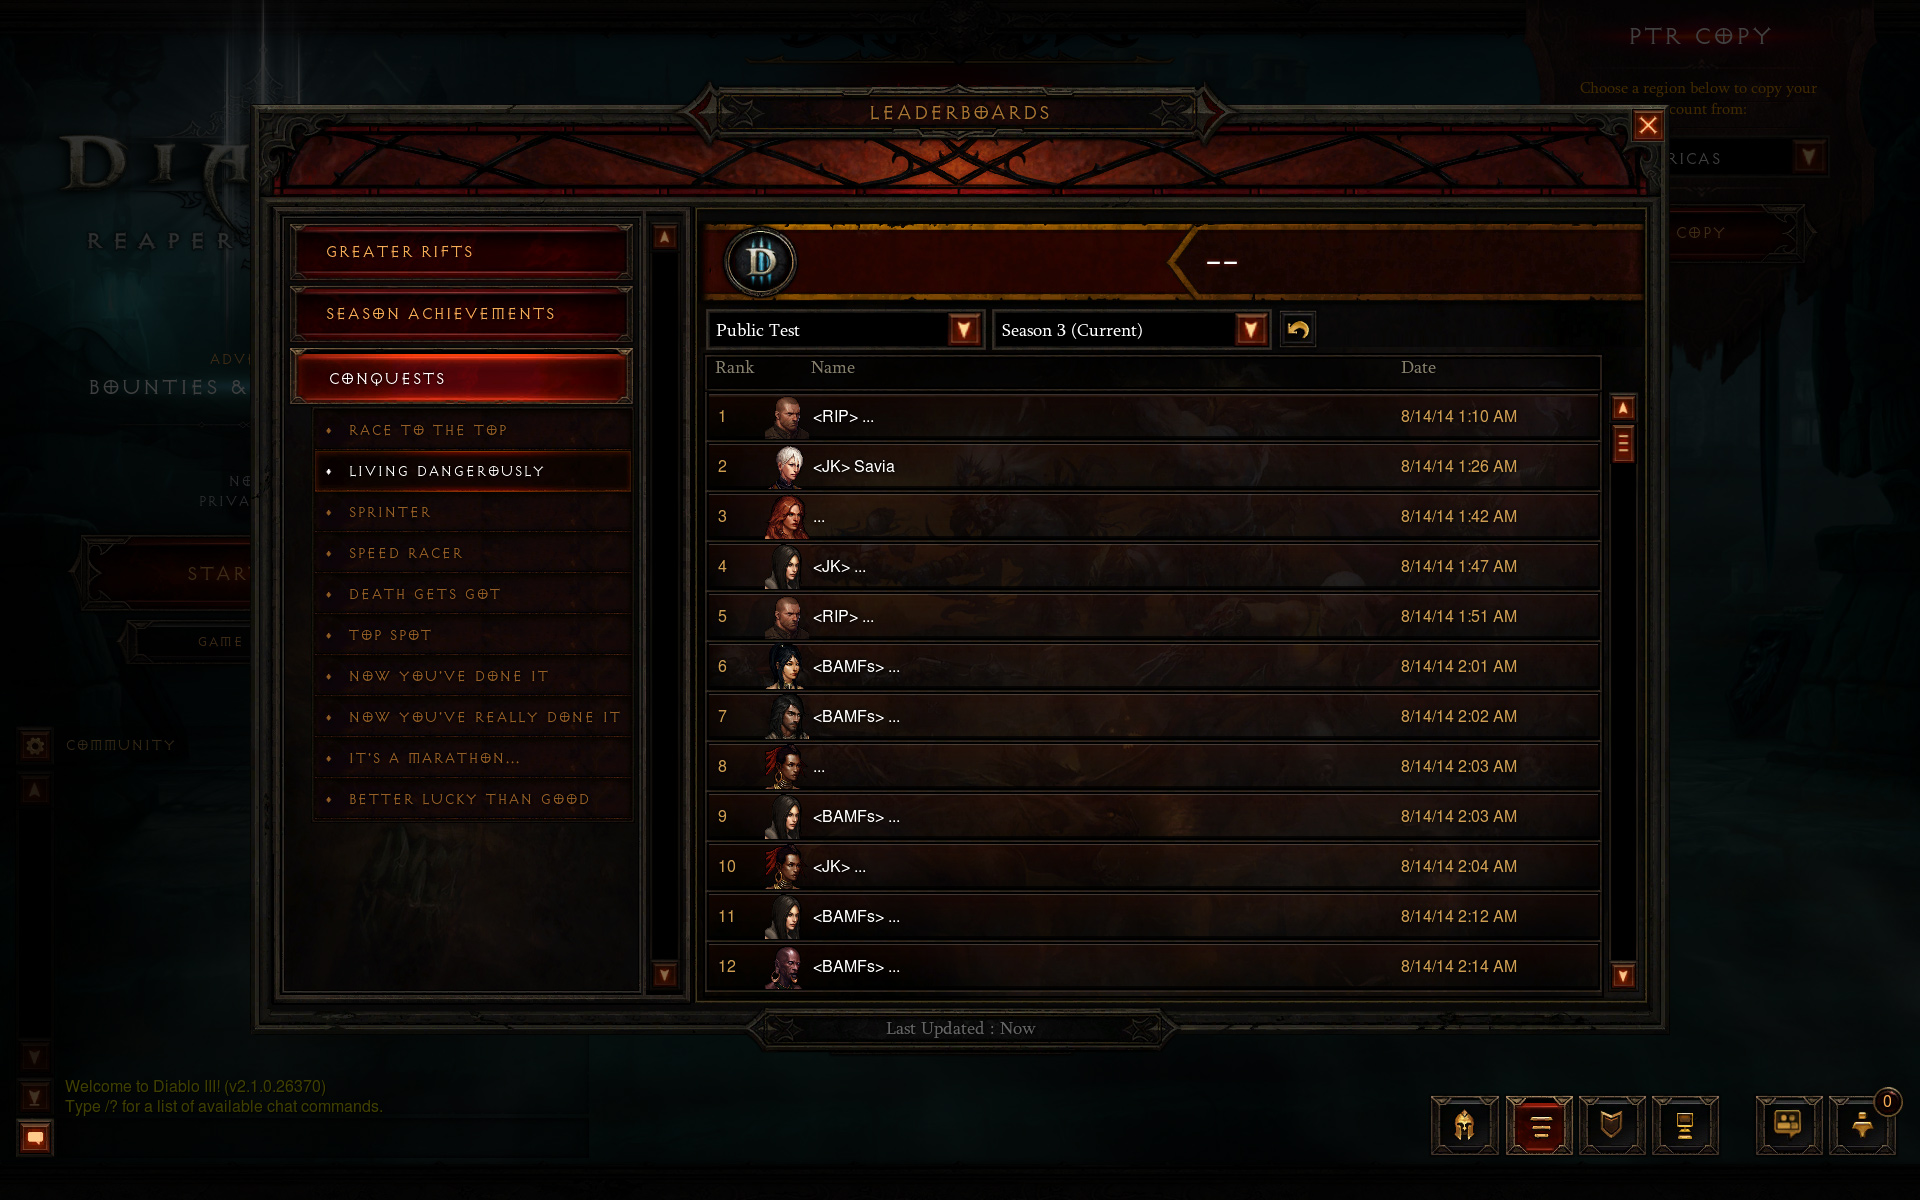 Patch 2.1.0 Preview: Seasons - Diablo III